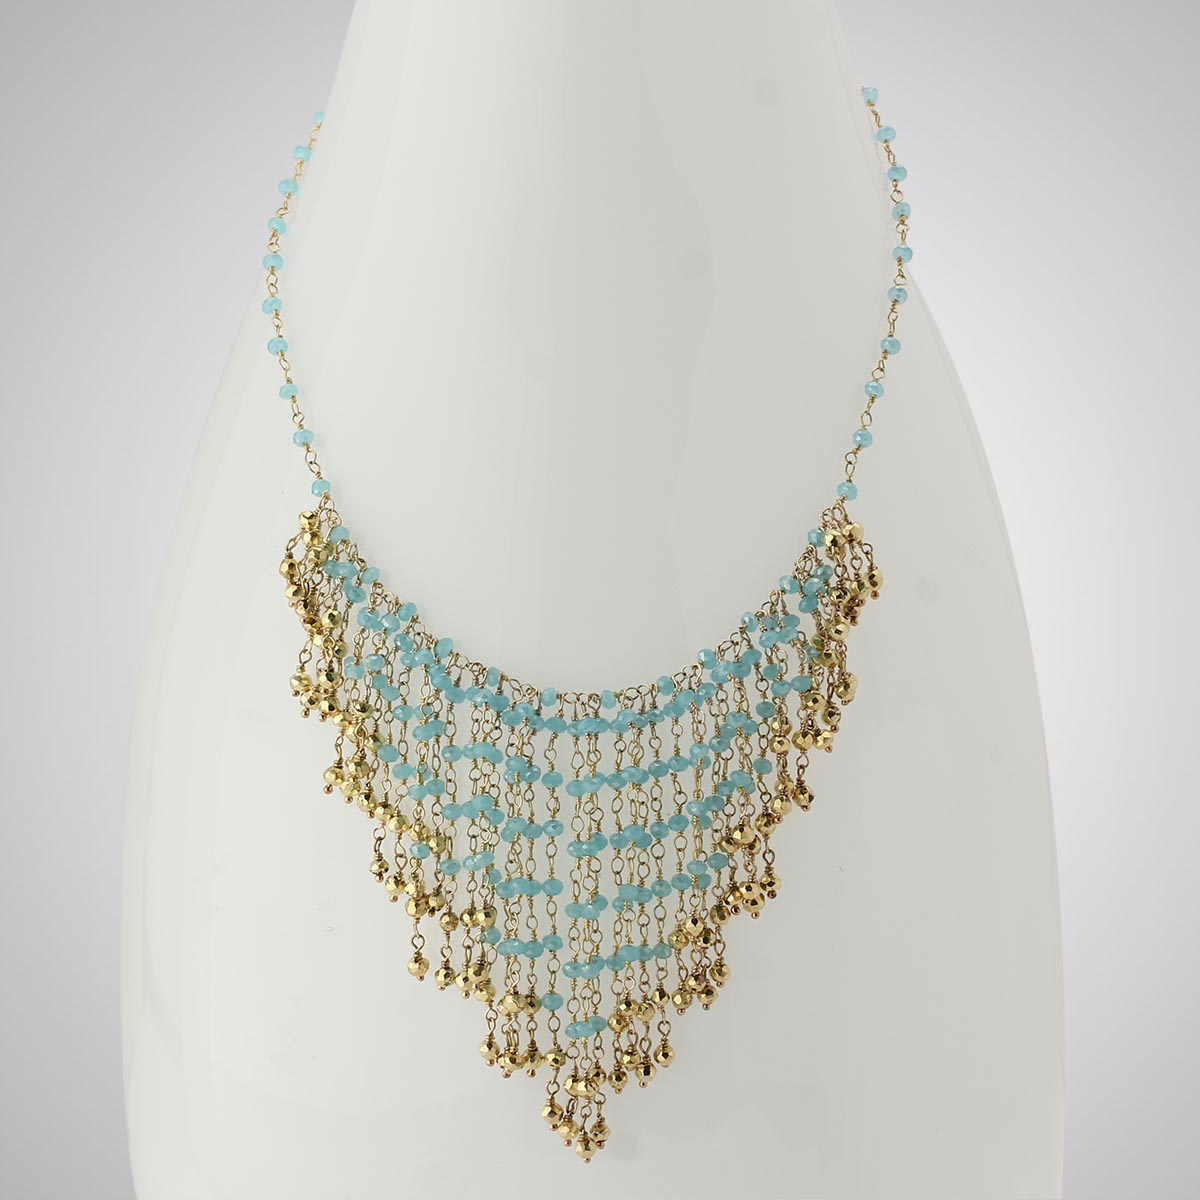 348524-Ocean Chalcedony & Pyrite Necklace